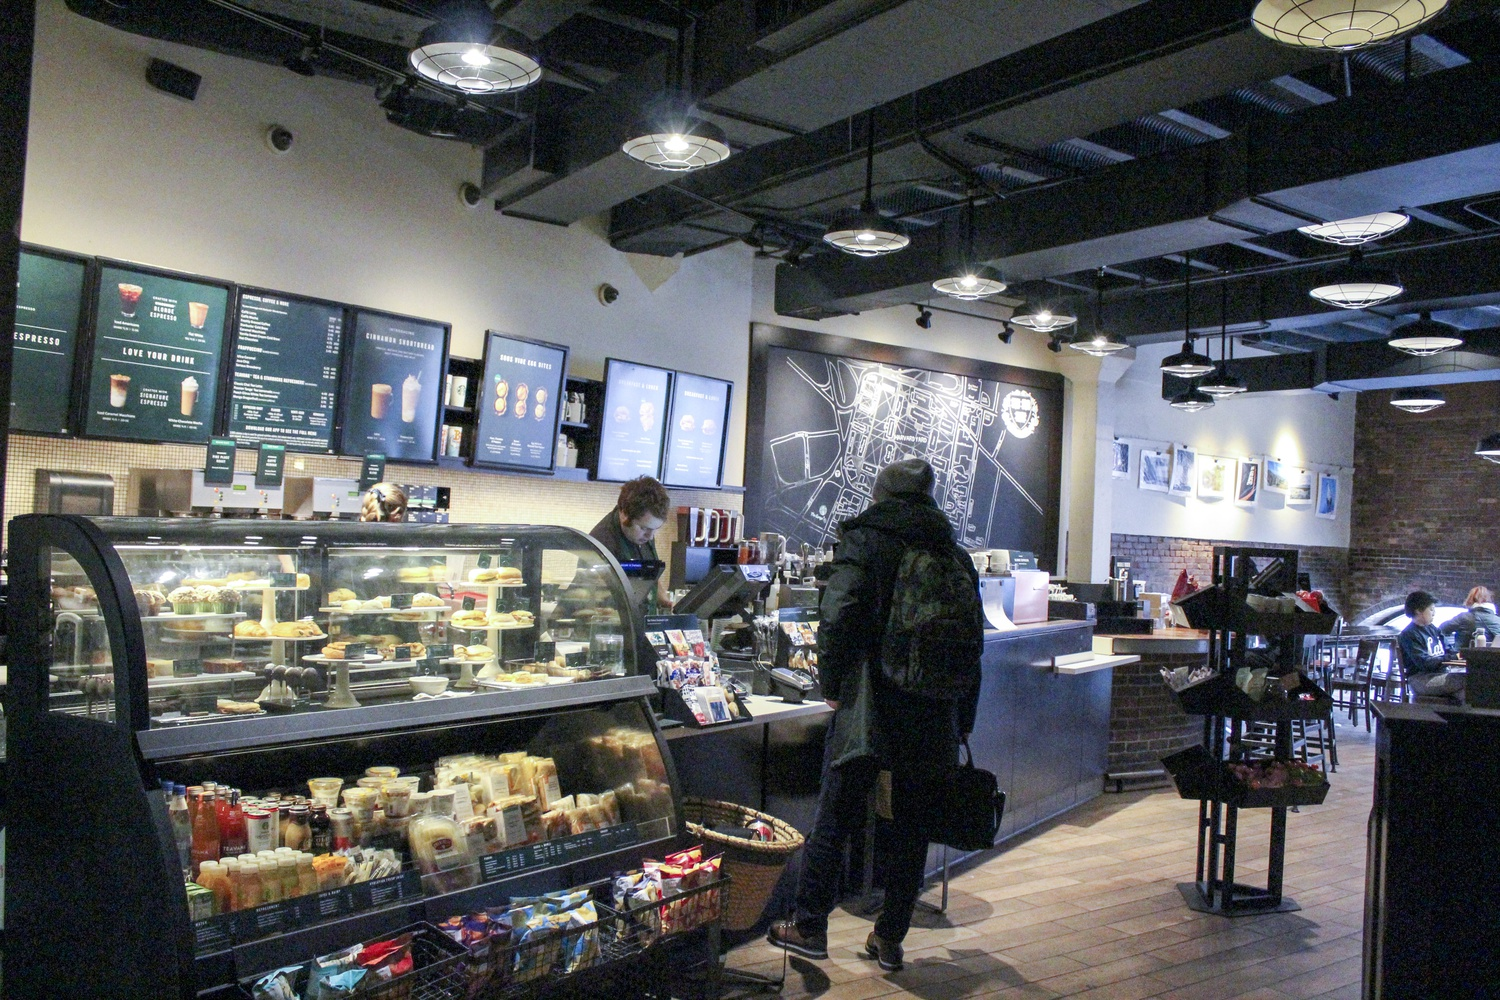 Starbucks in the Garage will close on Feb. 22, another in a string of Harvard Square business closures.